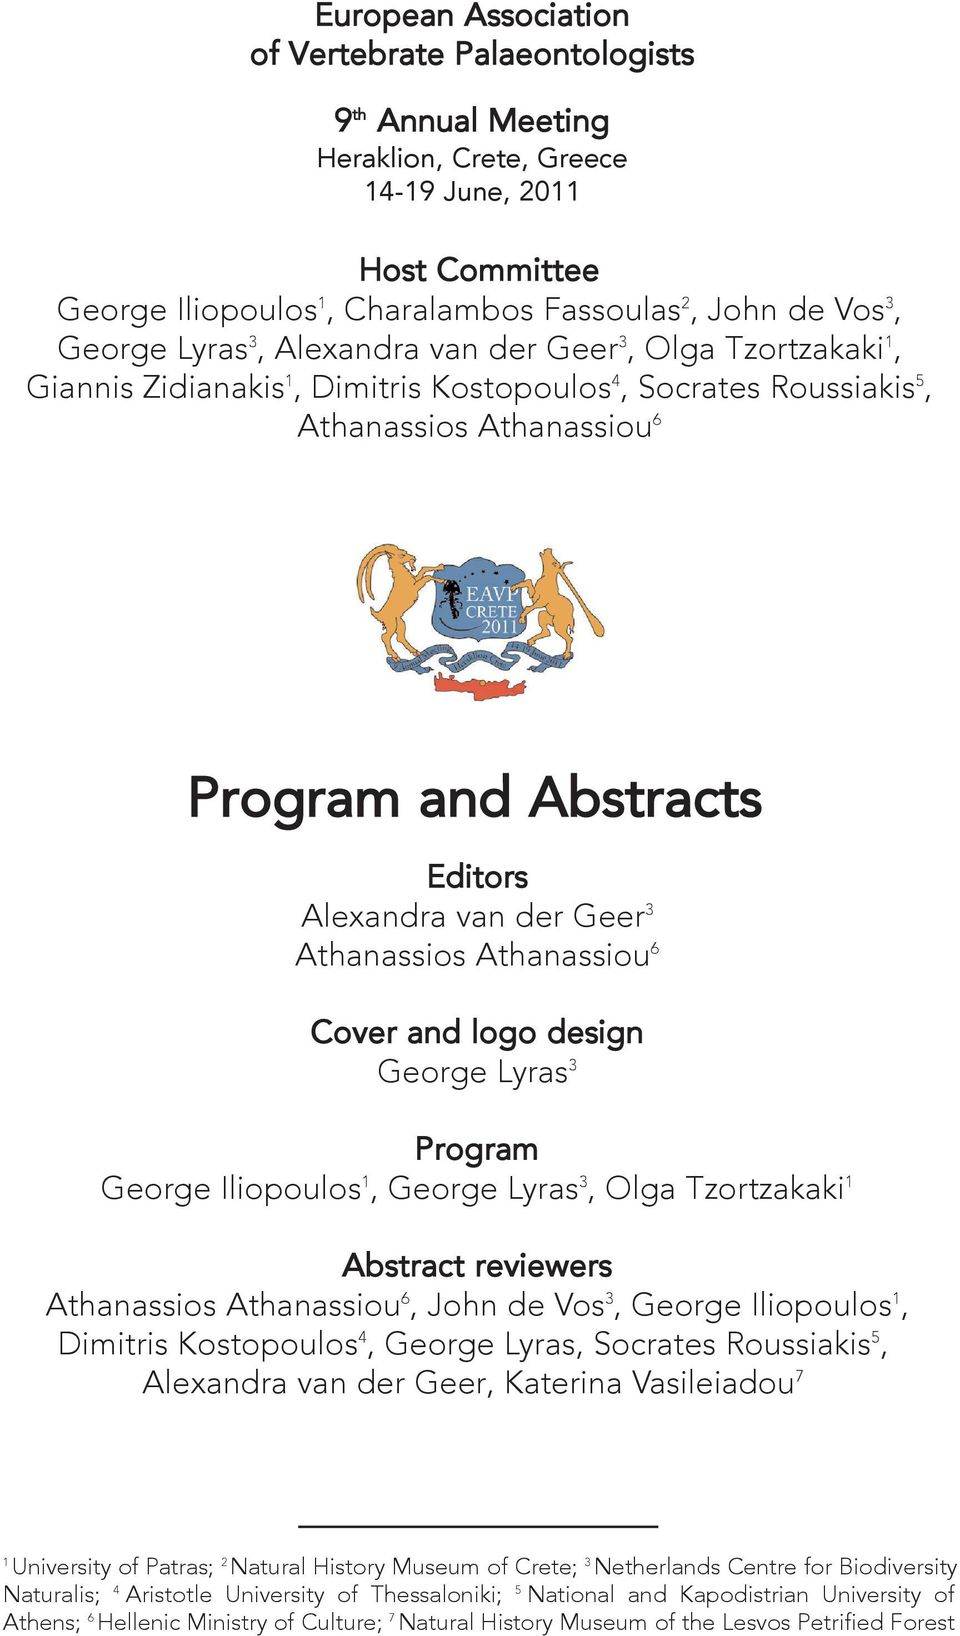 Geer 3 Athanassios Athanassiou 6 Cover and logo design George Lyras 3 Program George Iliopoulos 1, George Lyras 3, Olga Tzortzakaki 1 Abstract reviewers Athanassios Athanassiou 6, John de Vos 3,